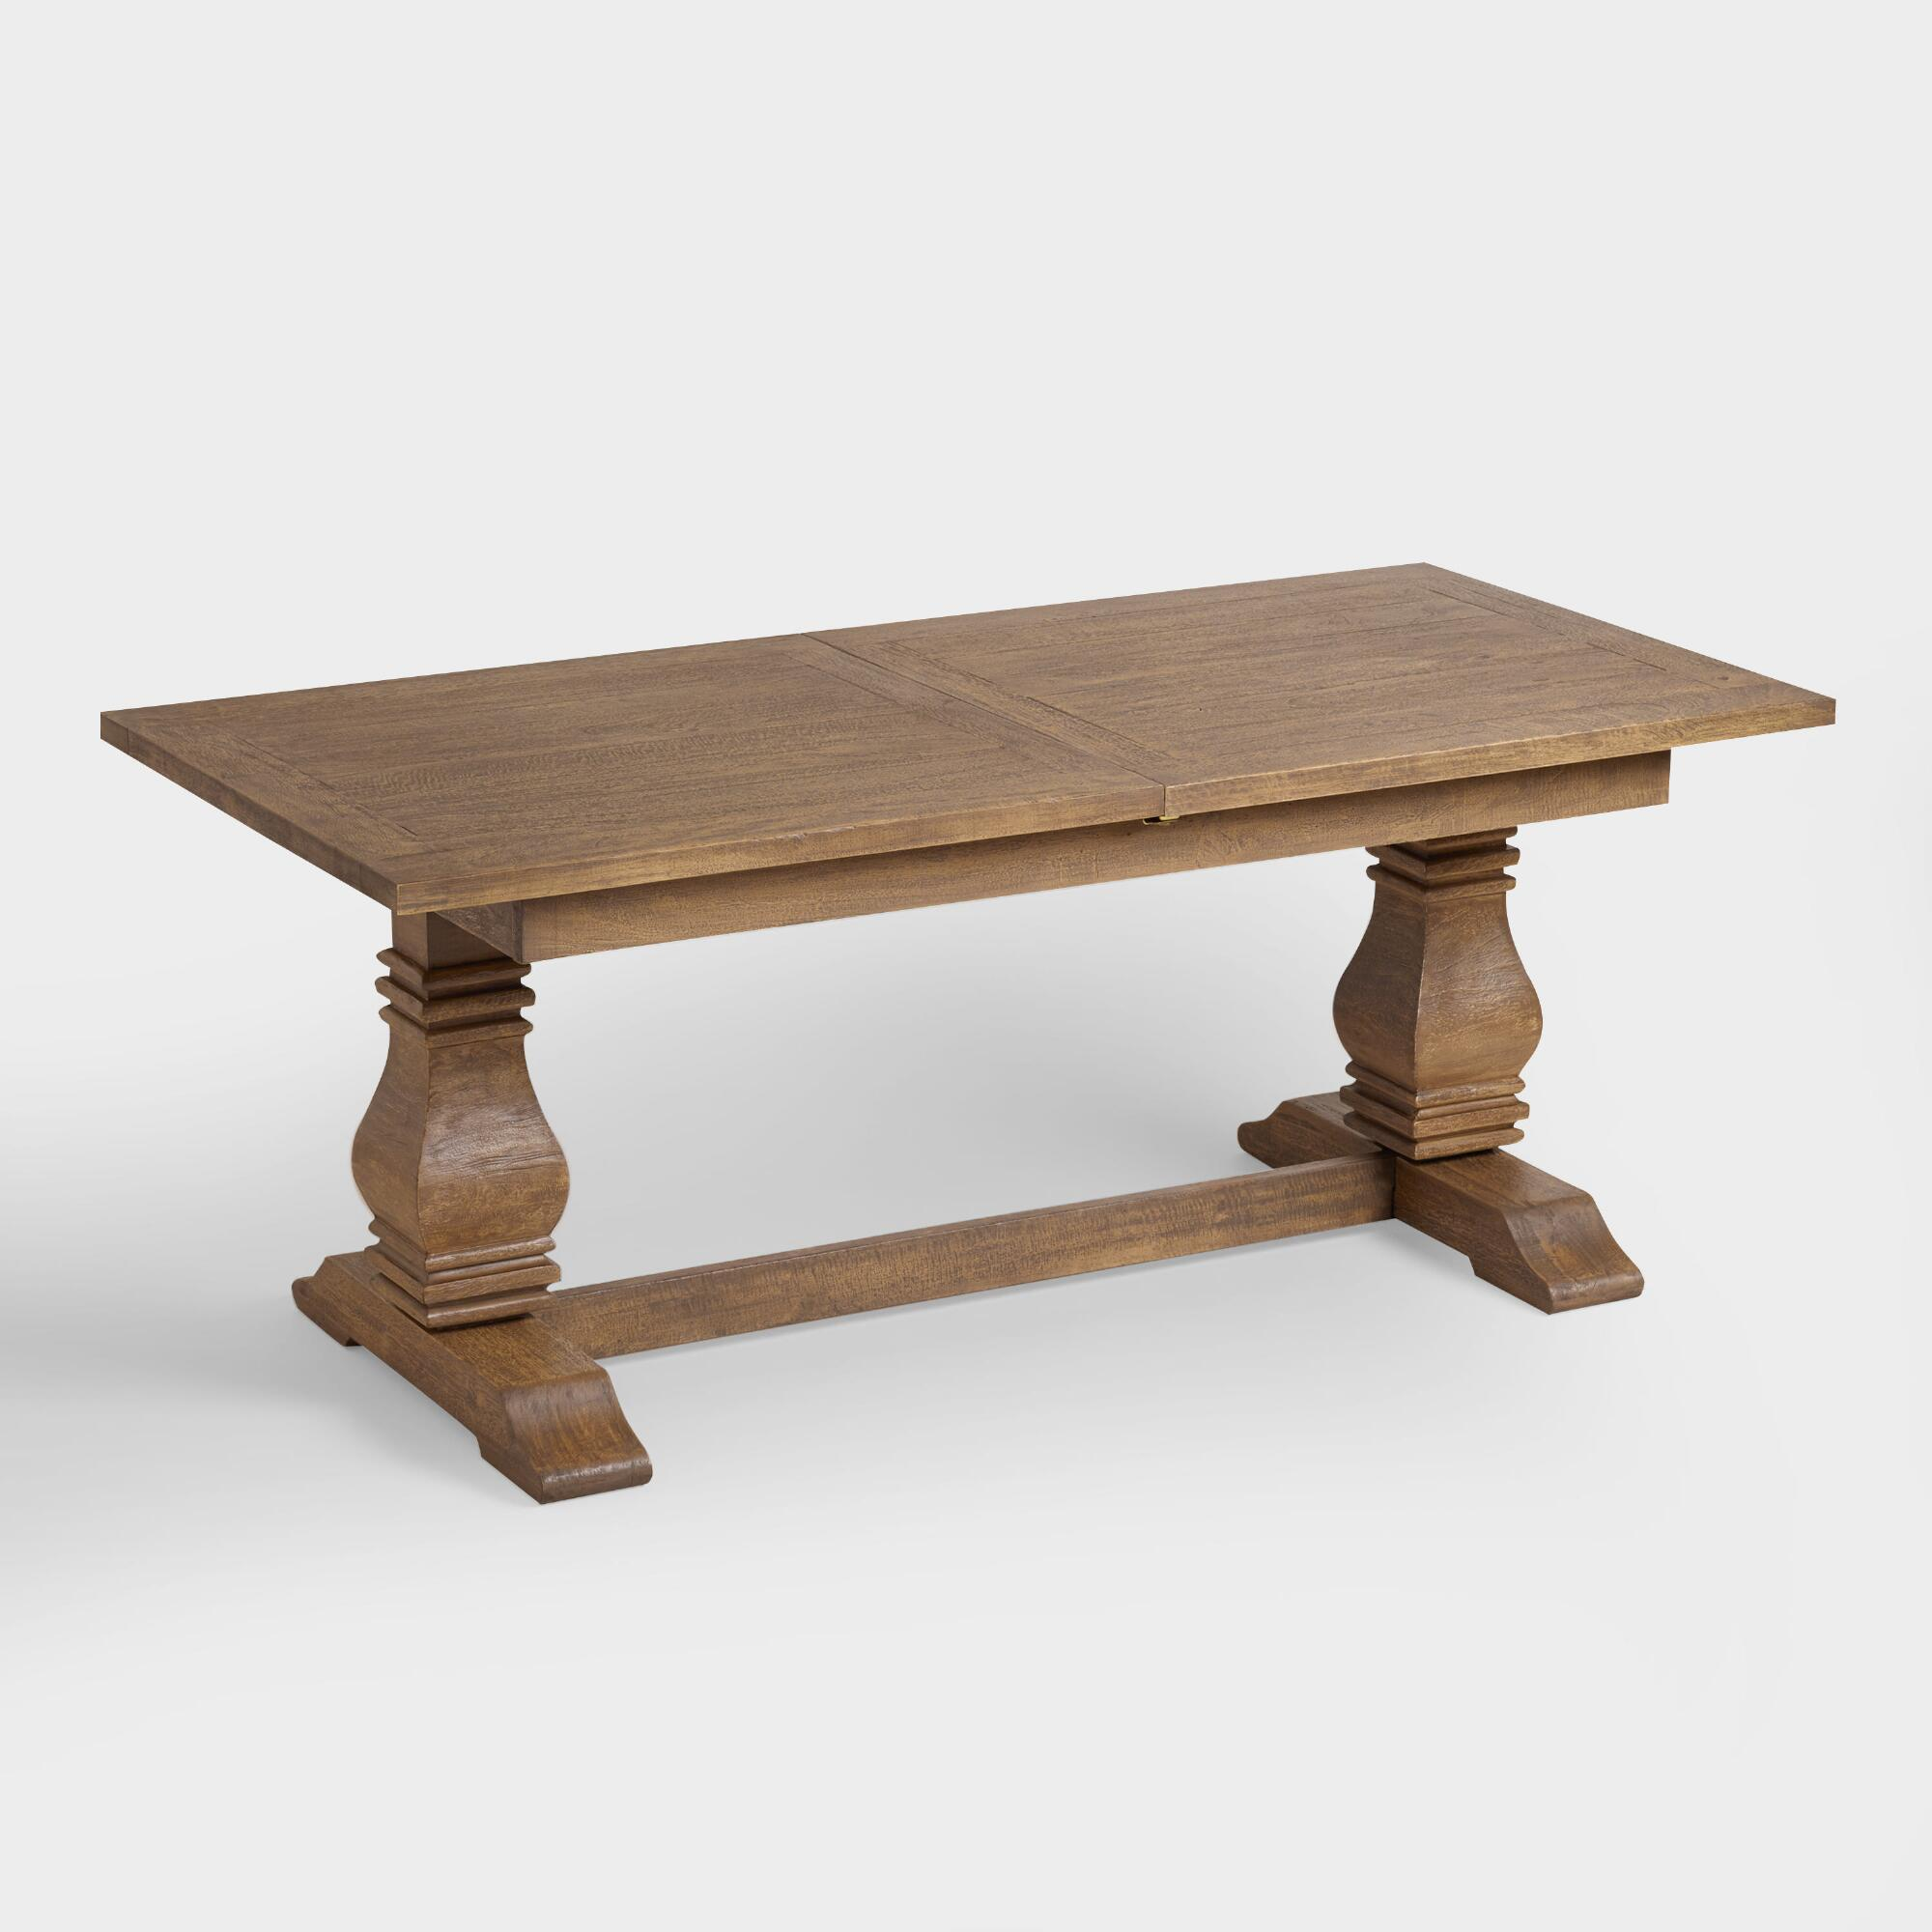 Wood deighton extension dining table world market for Extension dining table